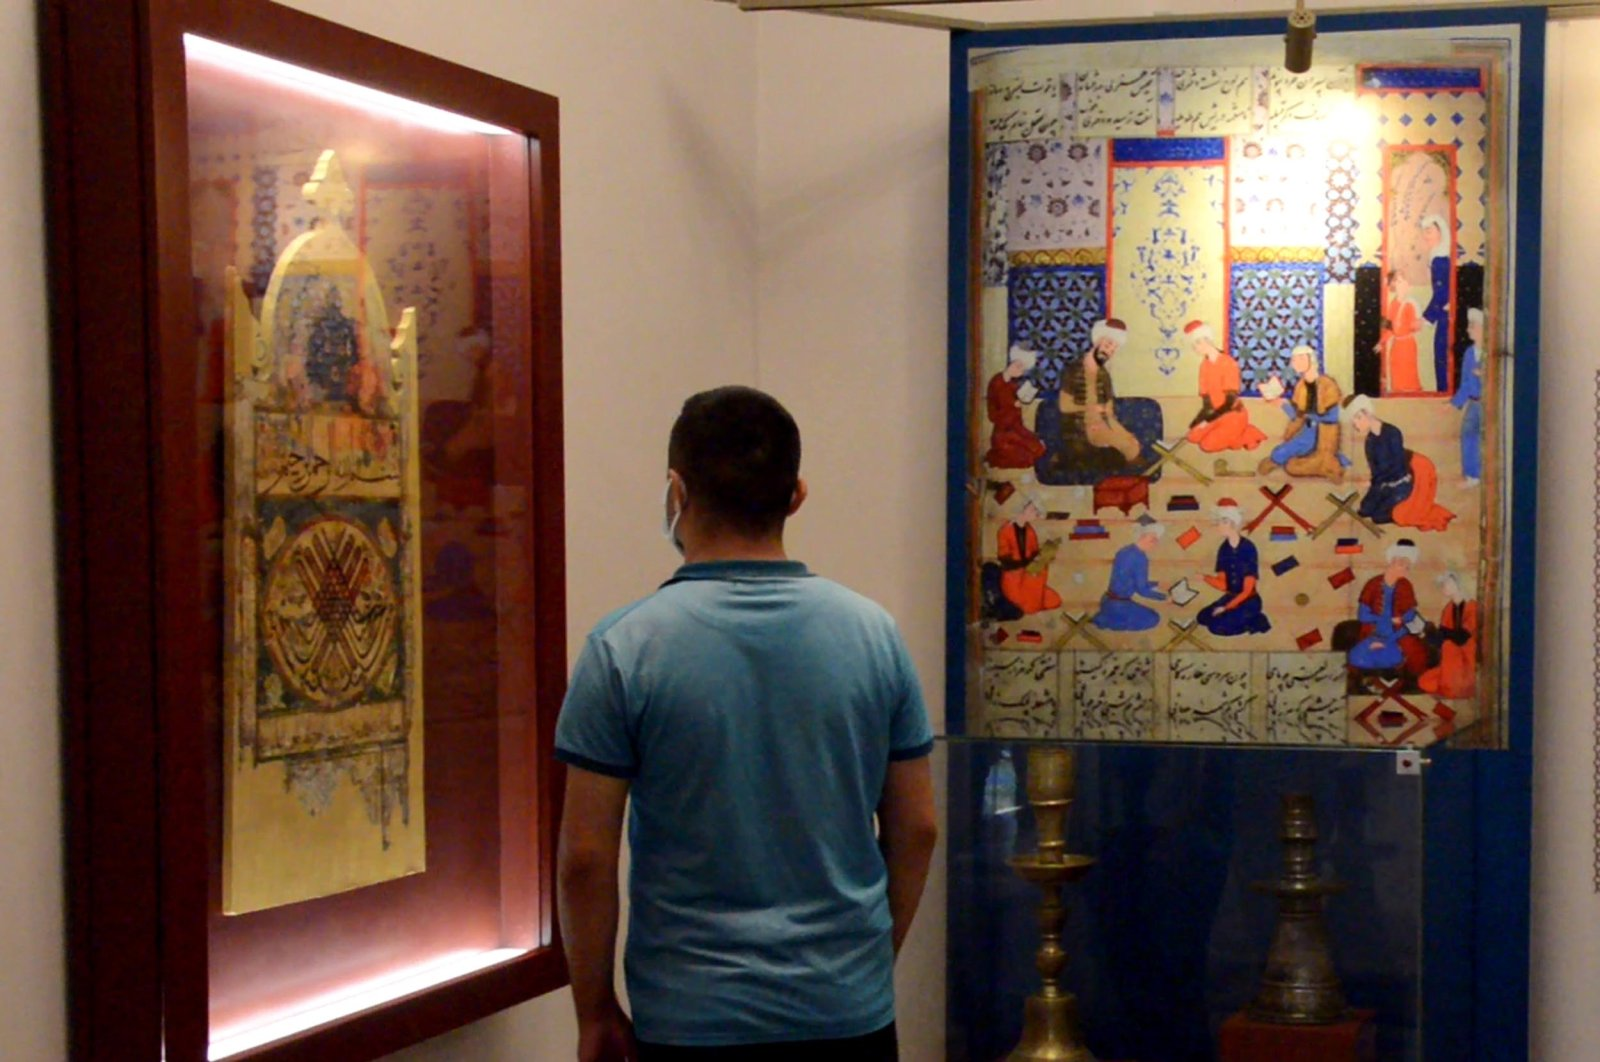 A visitor examines works in the Çifte Minareli Medrese, Erzurum, eastern Turkey, July 15, 2021. (DHA Photo)